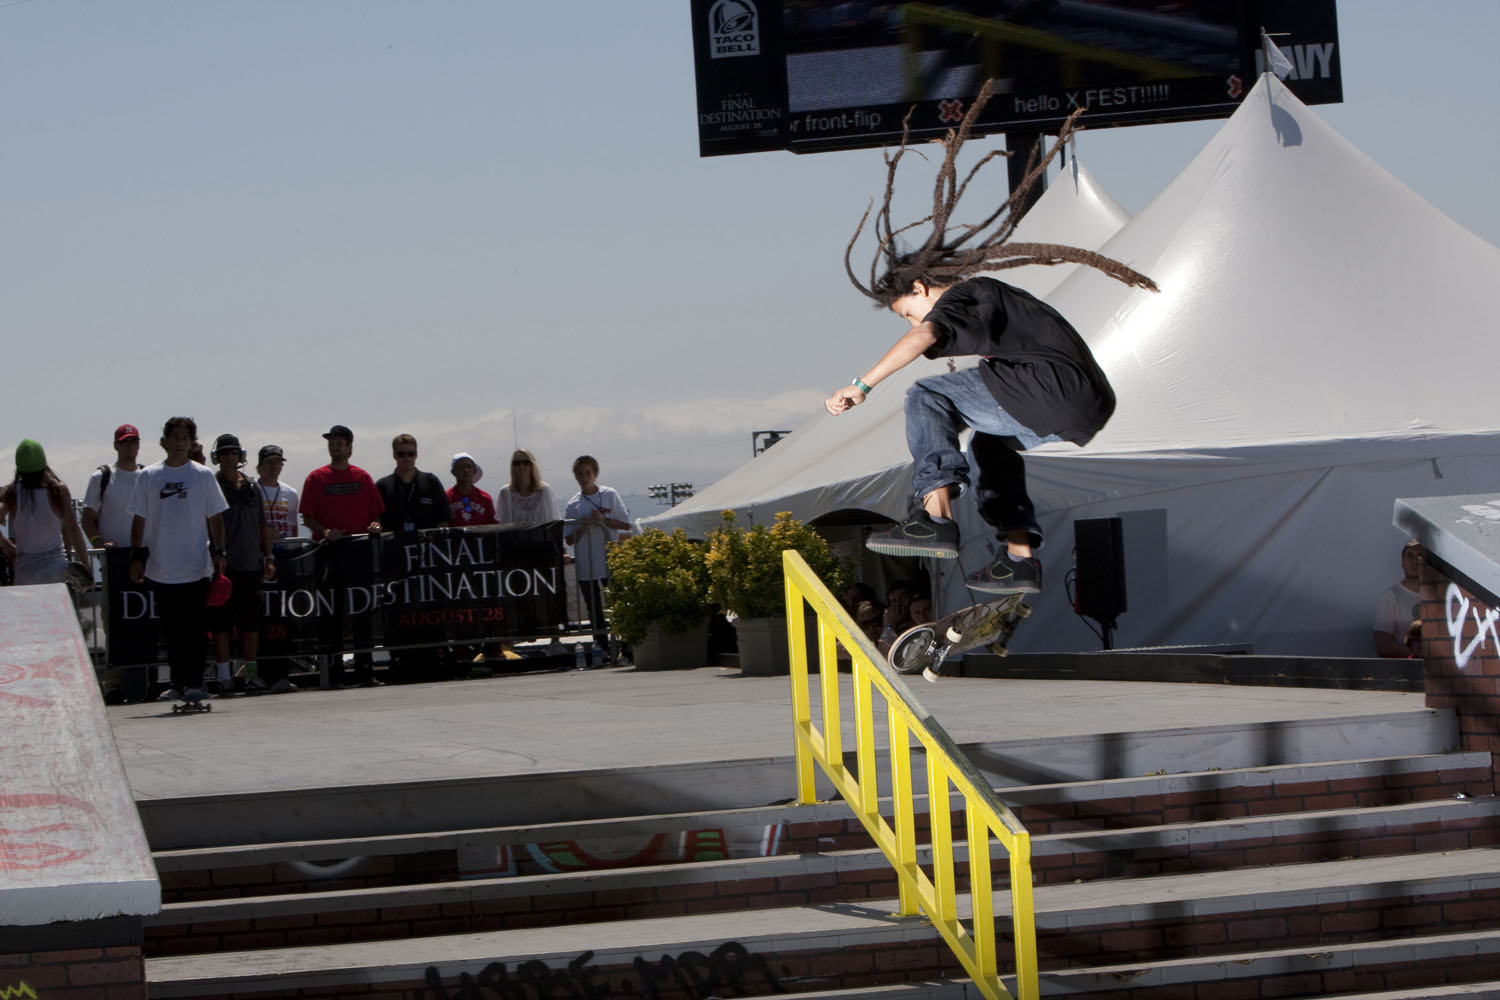 Nyjah Houston competes in the Men's Skateboard Street finals at Summer X Games 15 at Home Depot Center on August 1, 2009 in Carson, California.